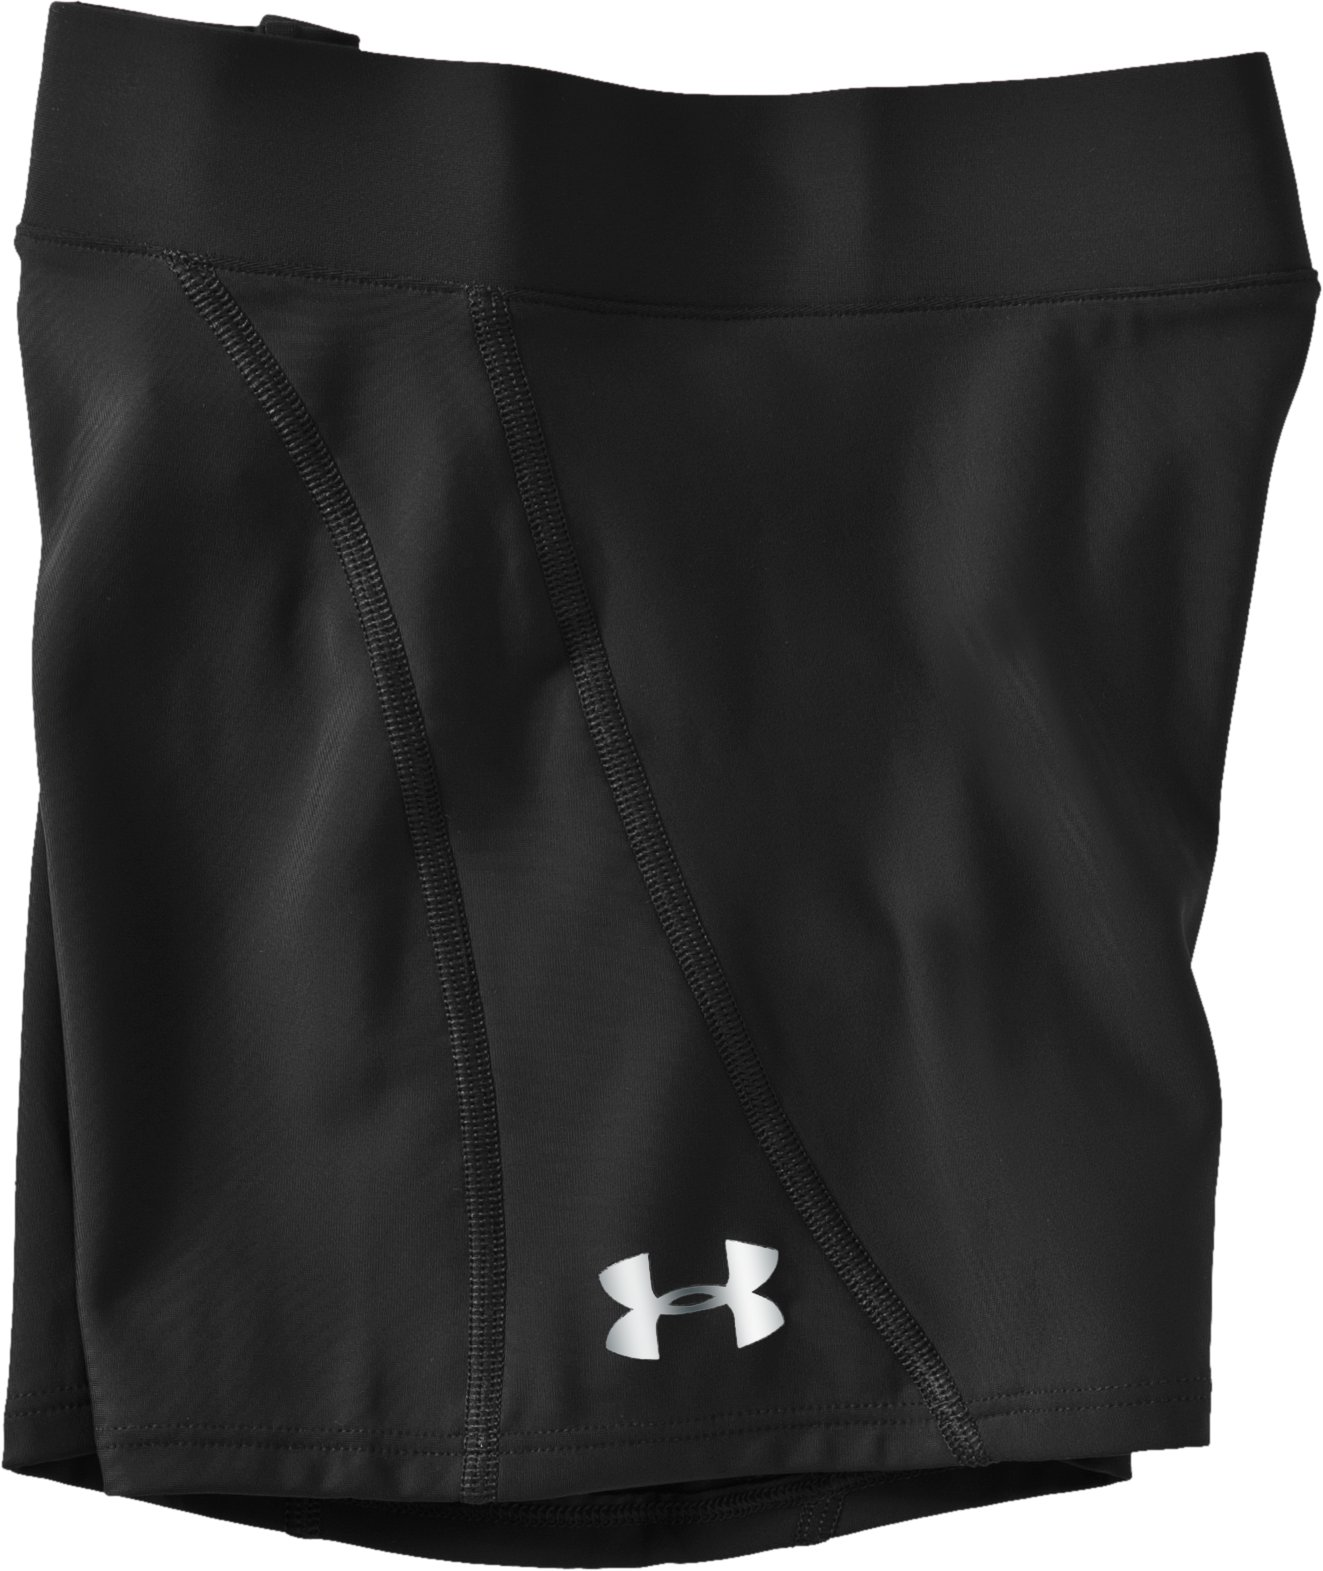 "Women's Ultra 2"" Compression Shorts, Black , Laydown"